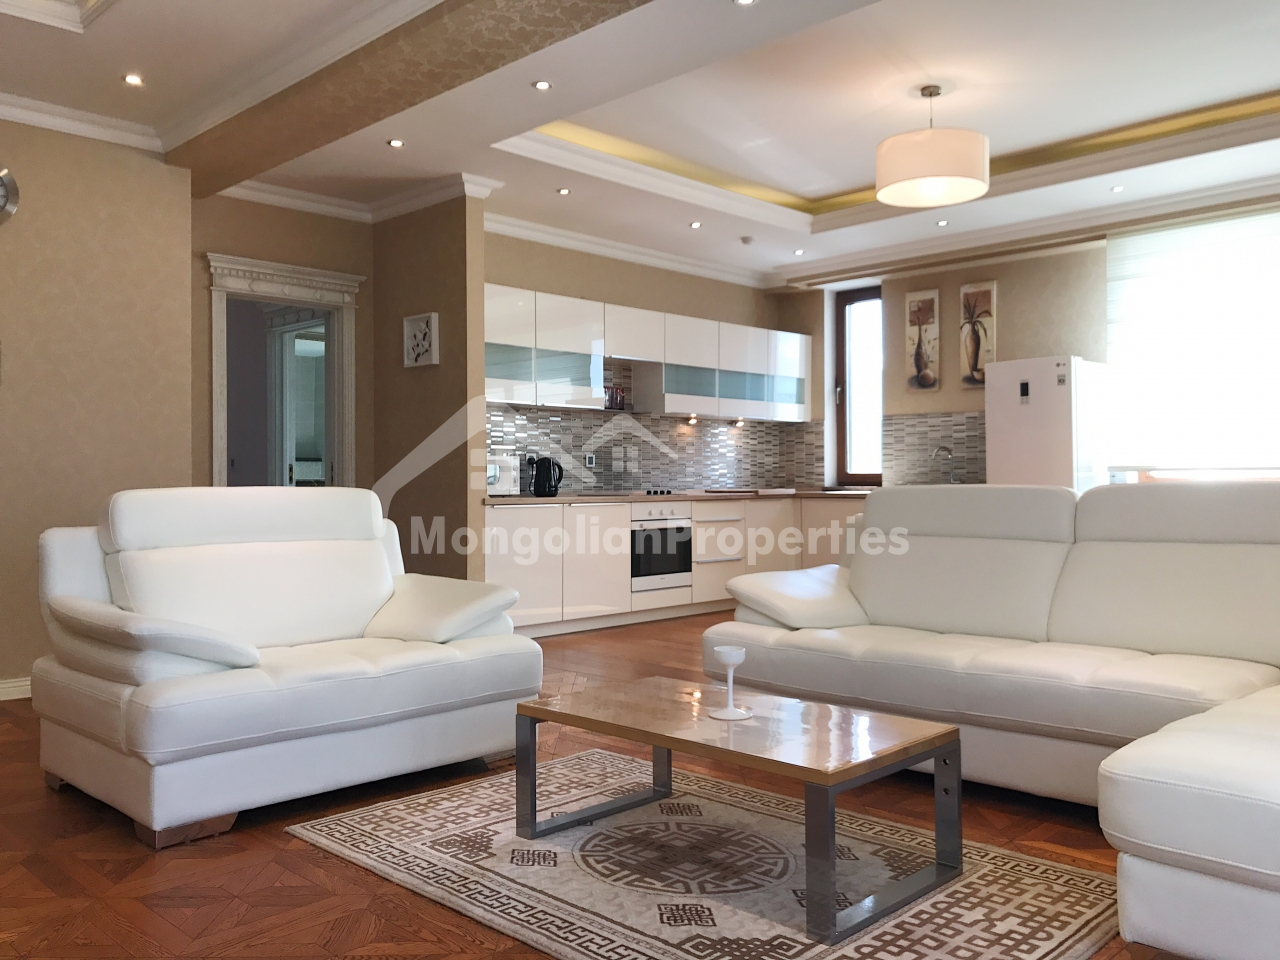 Modern, Very clean 3 bedroom apartment is for rent at River Garden